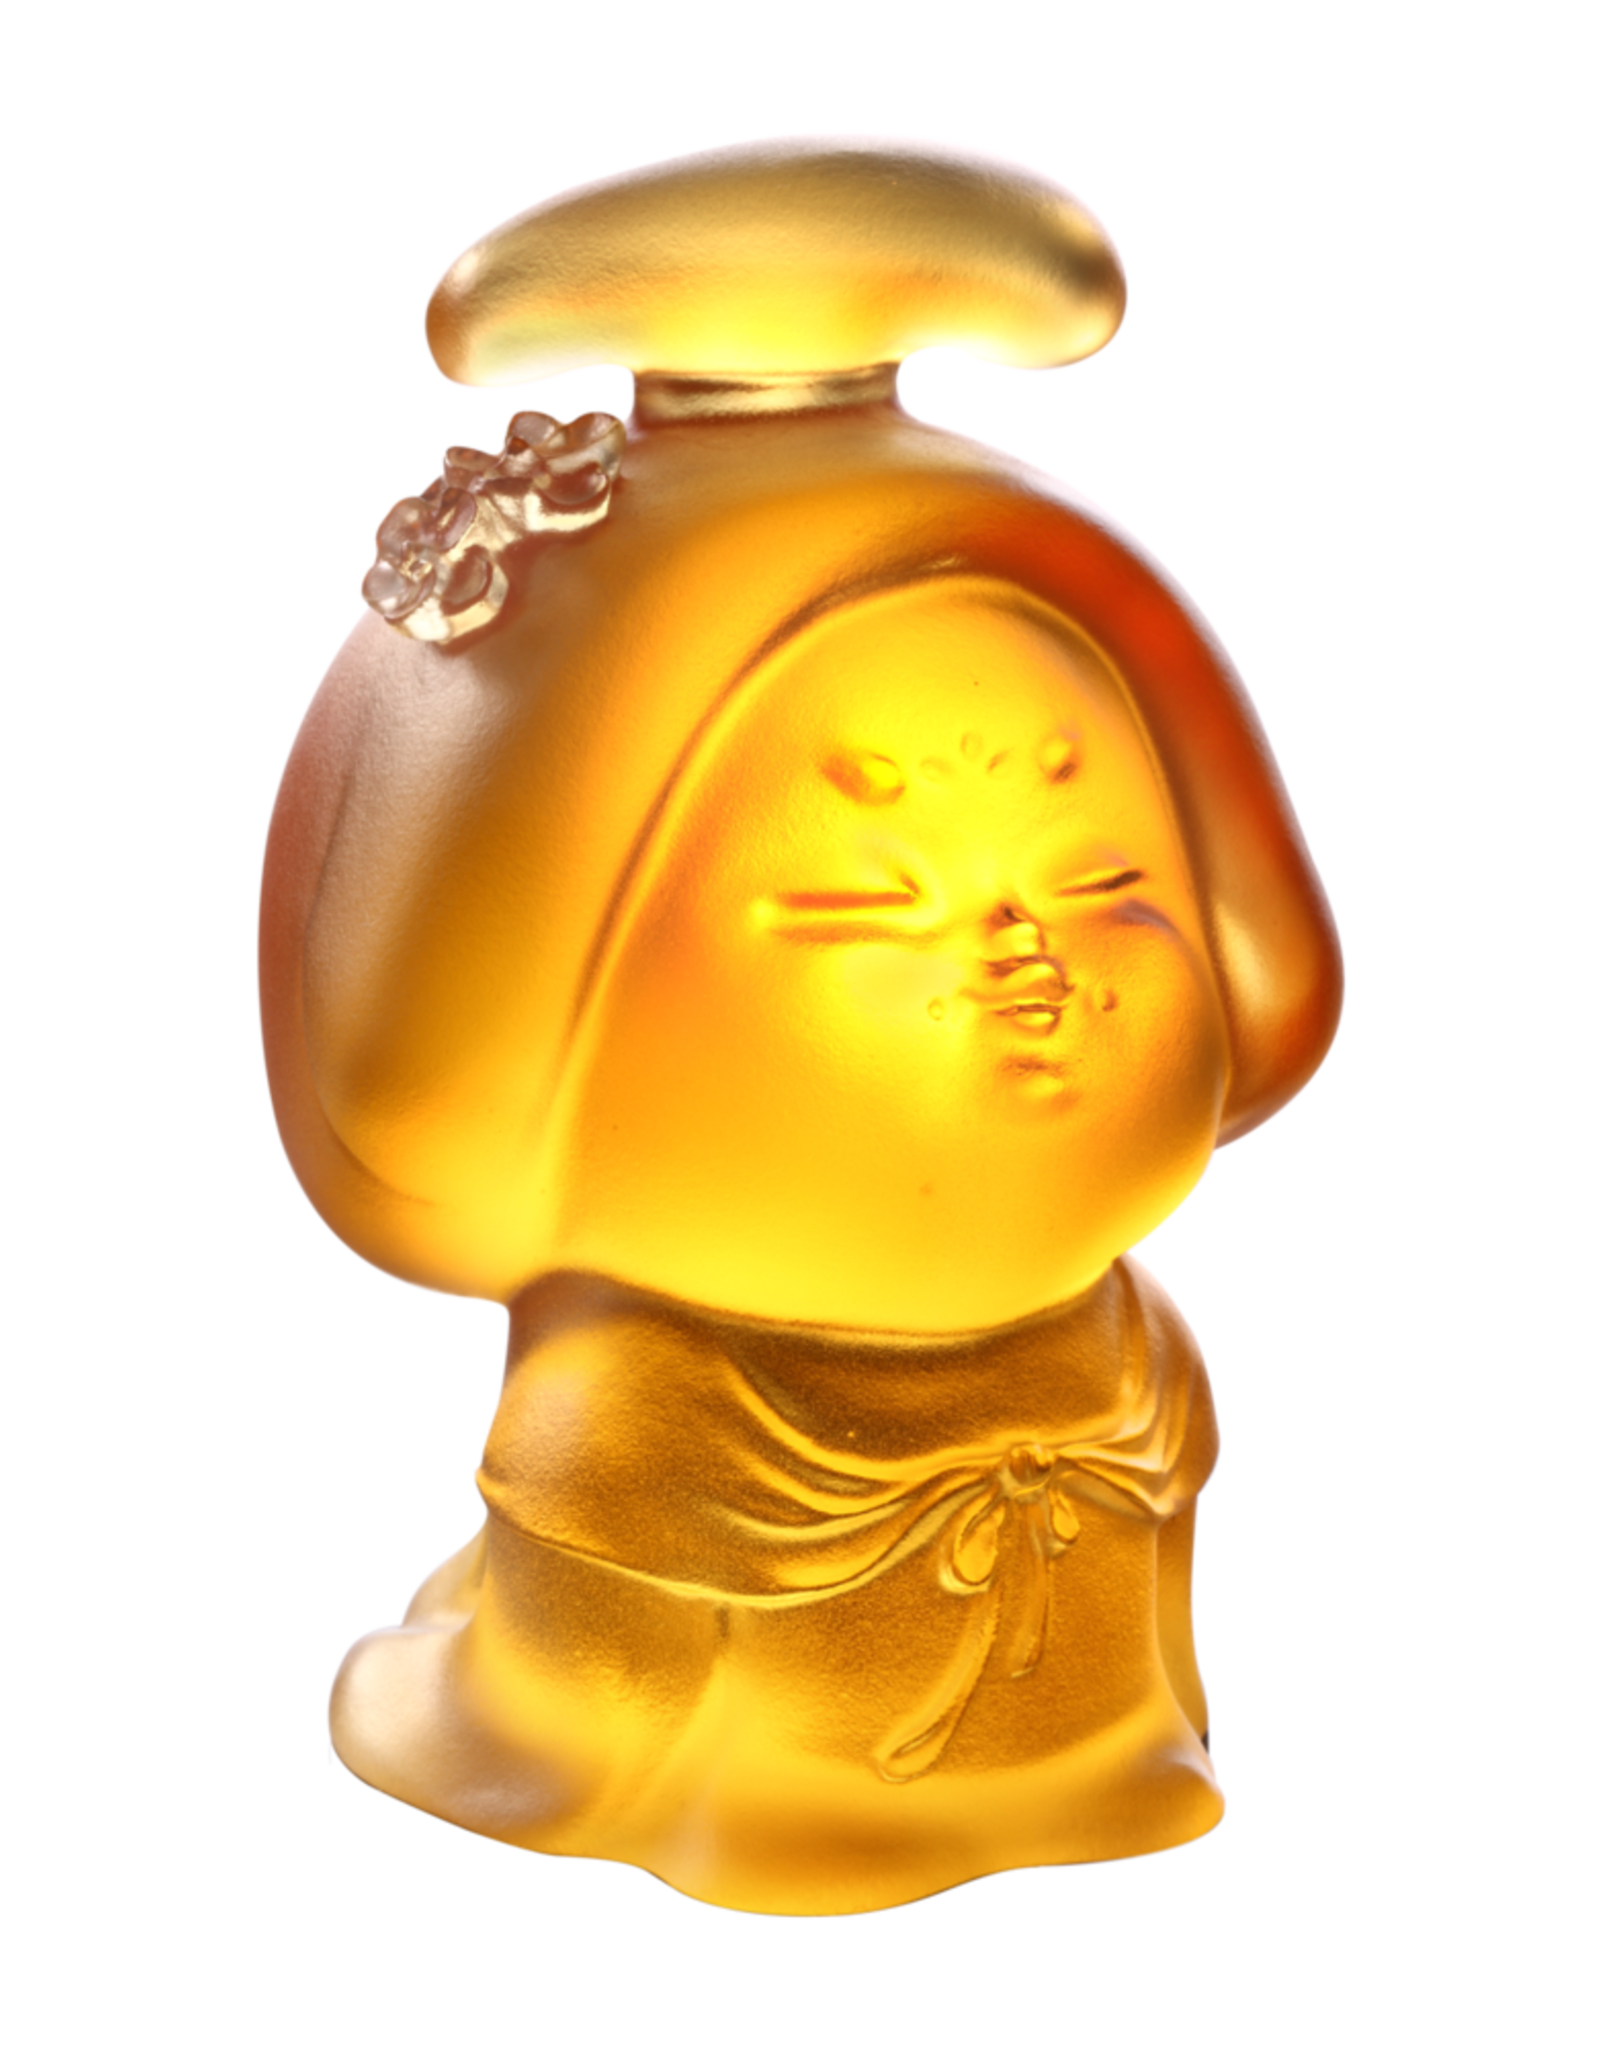 LIULI Crystal Art Crystal Mini Woman Figurine, The Beauty of Tang Dynasty-Celebration of a Strong Woman, Light Amber